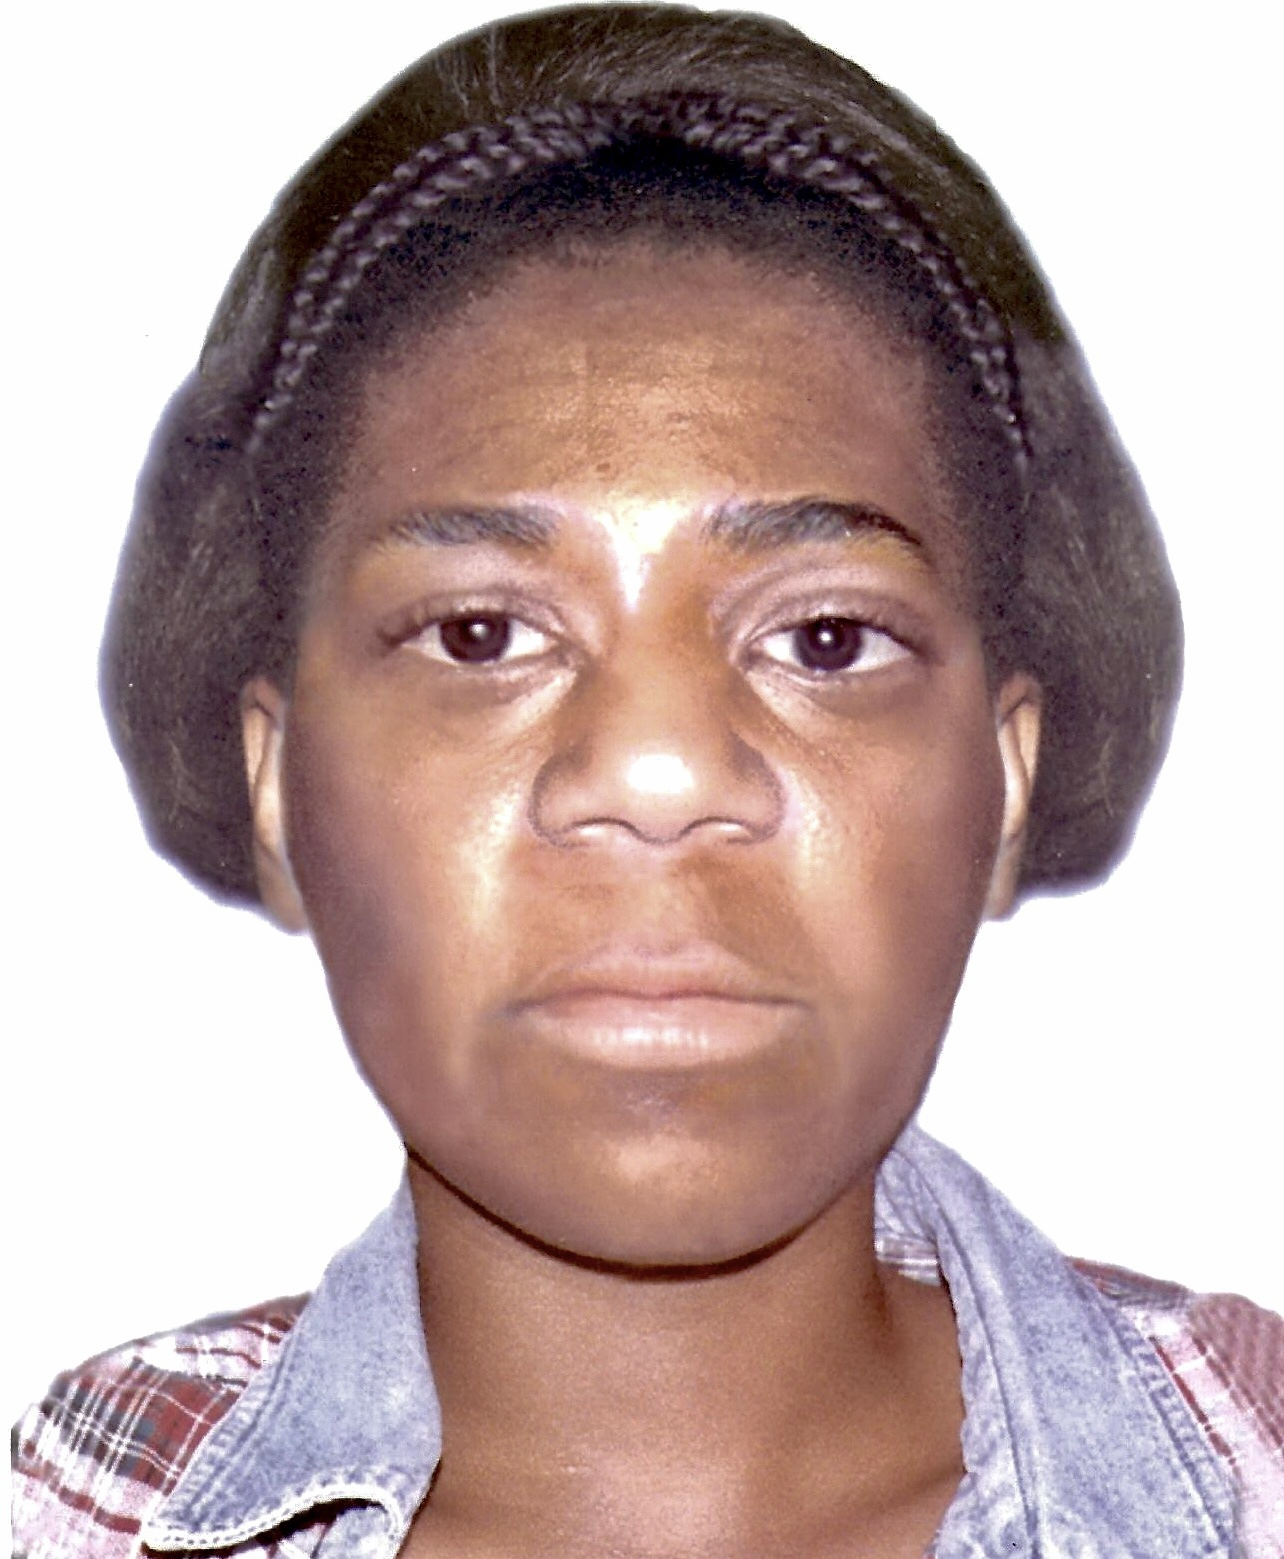 Bossier Parish Jane Doe (2011)